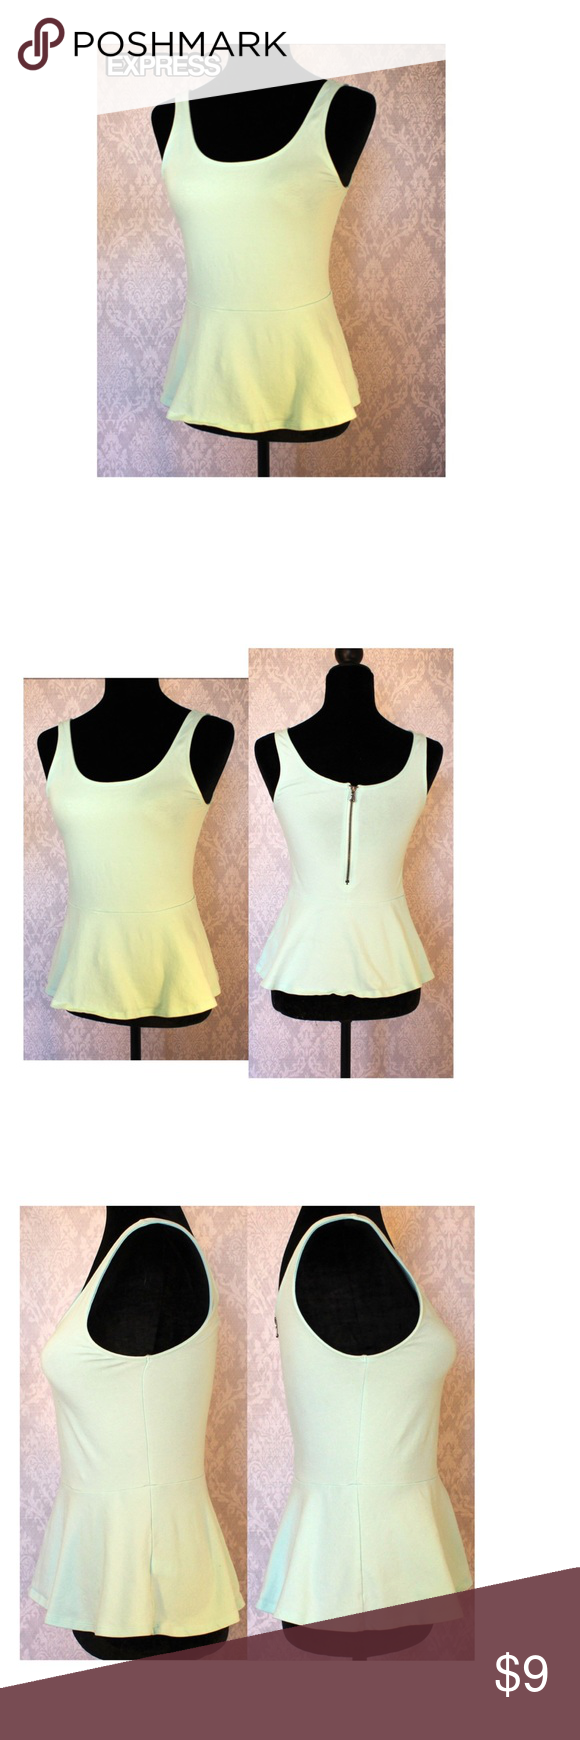 "EXPRESS PEPLUM TANK Size small petite Express tank top. Stretchy with zipper on the back. The color is between a light aqua and a mint green  Length 21"" Width 29.5 Express Tops Tank Tops"